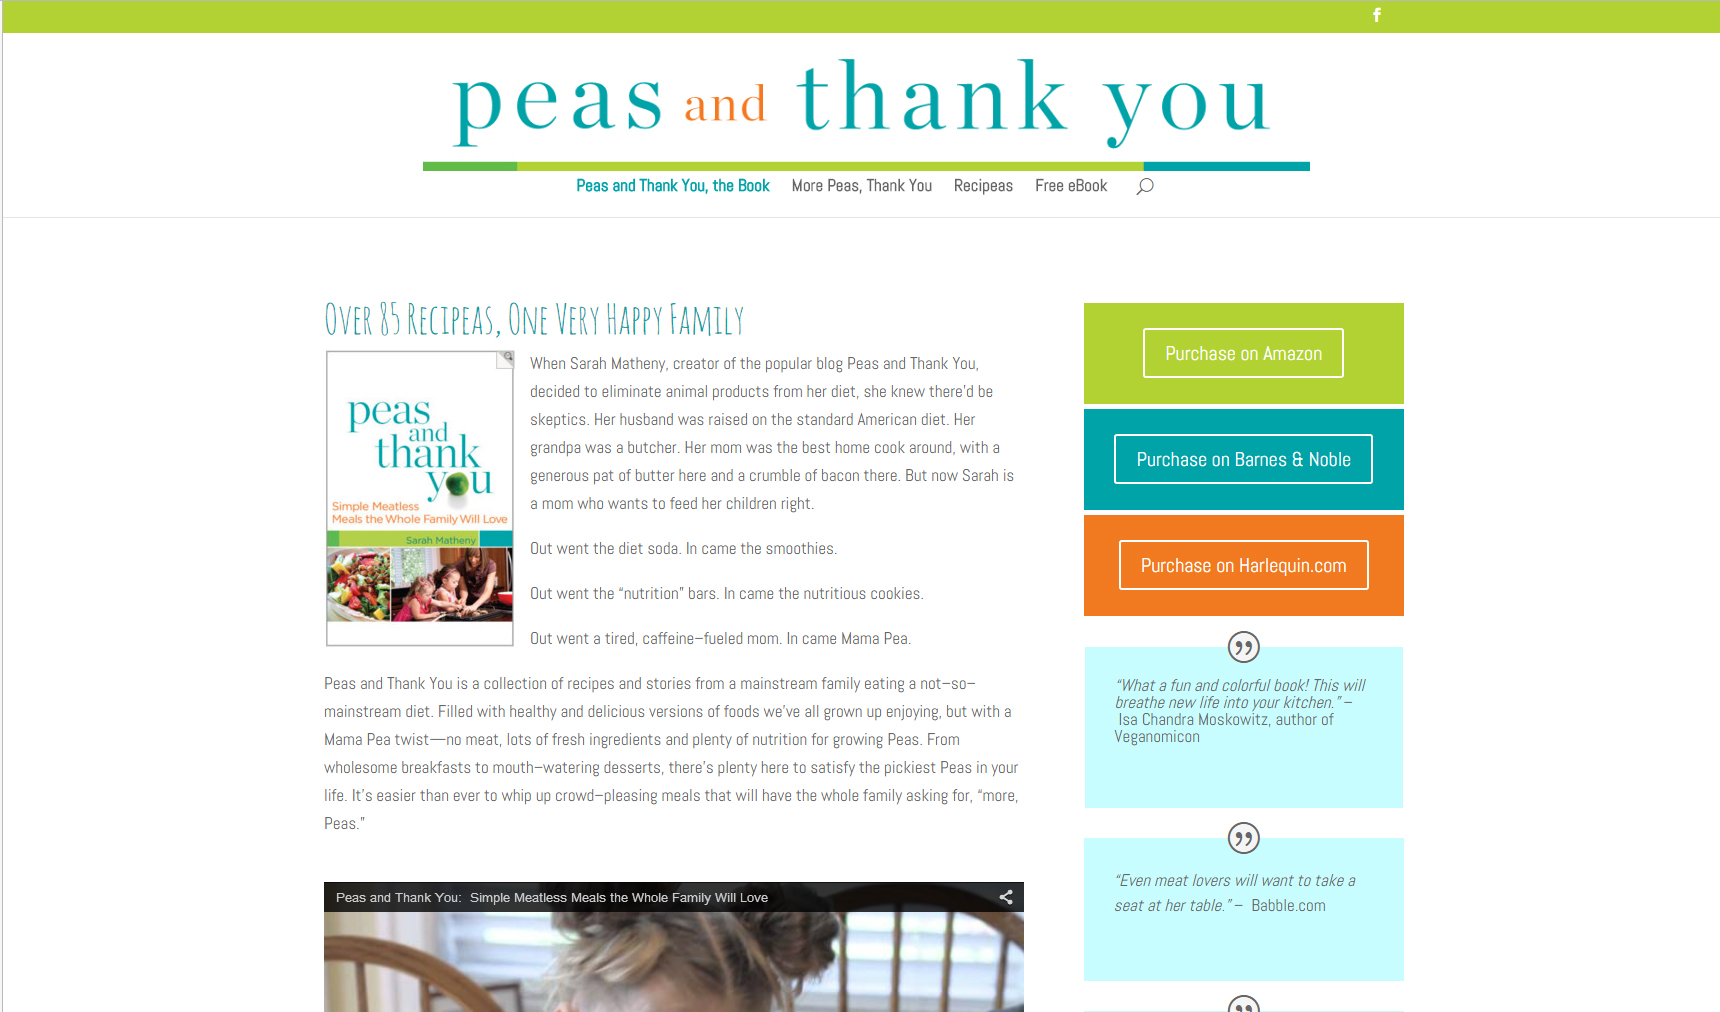 Peas and Thank You